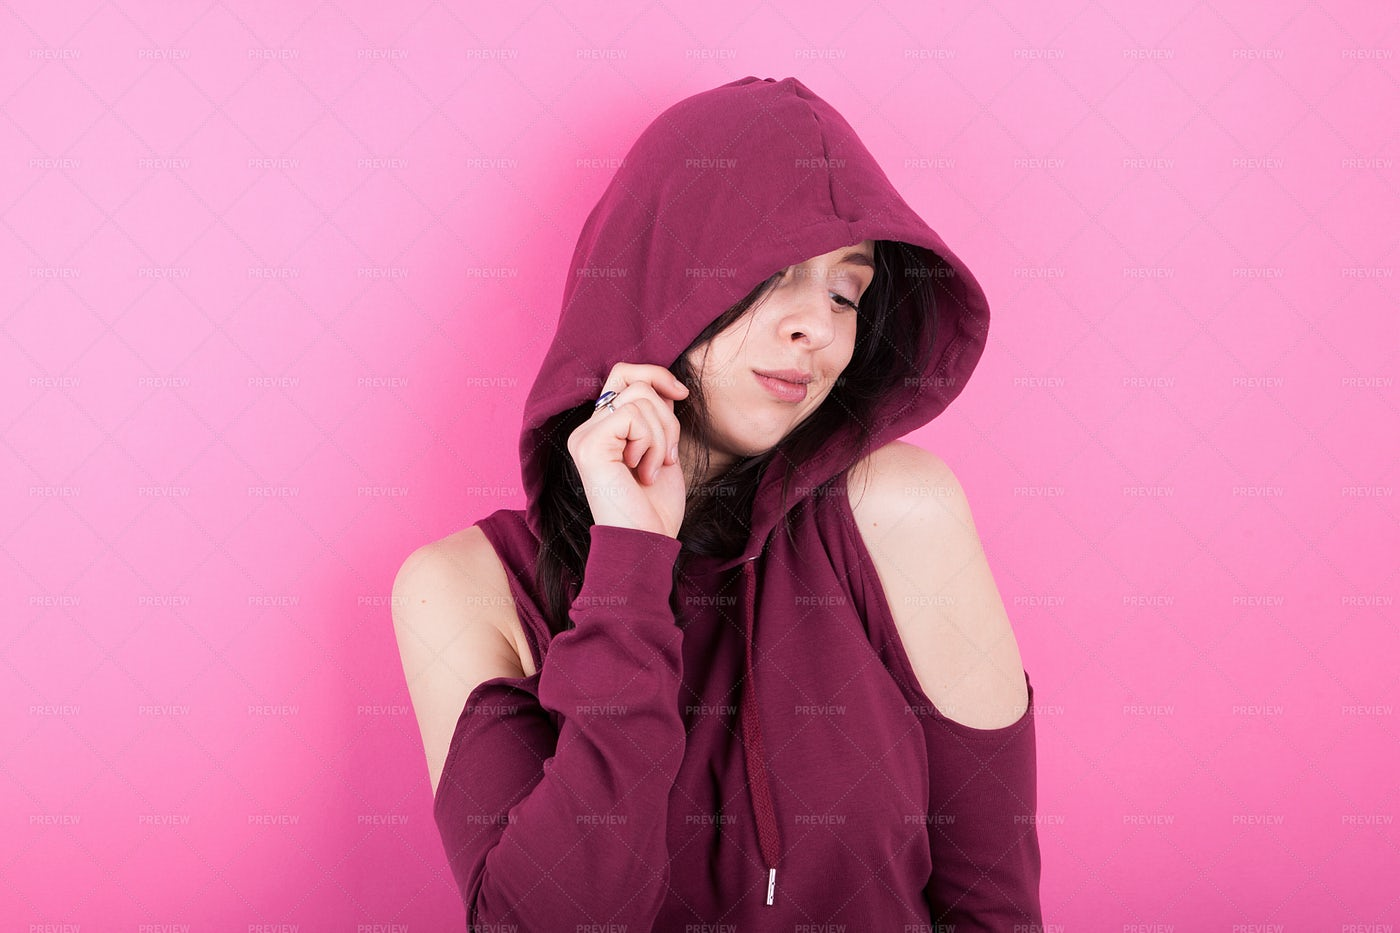 Confident Woman With Pink Hoodie: Stock Photos